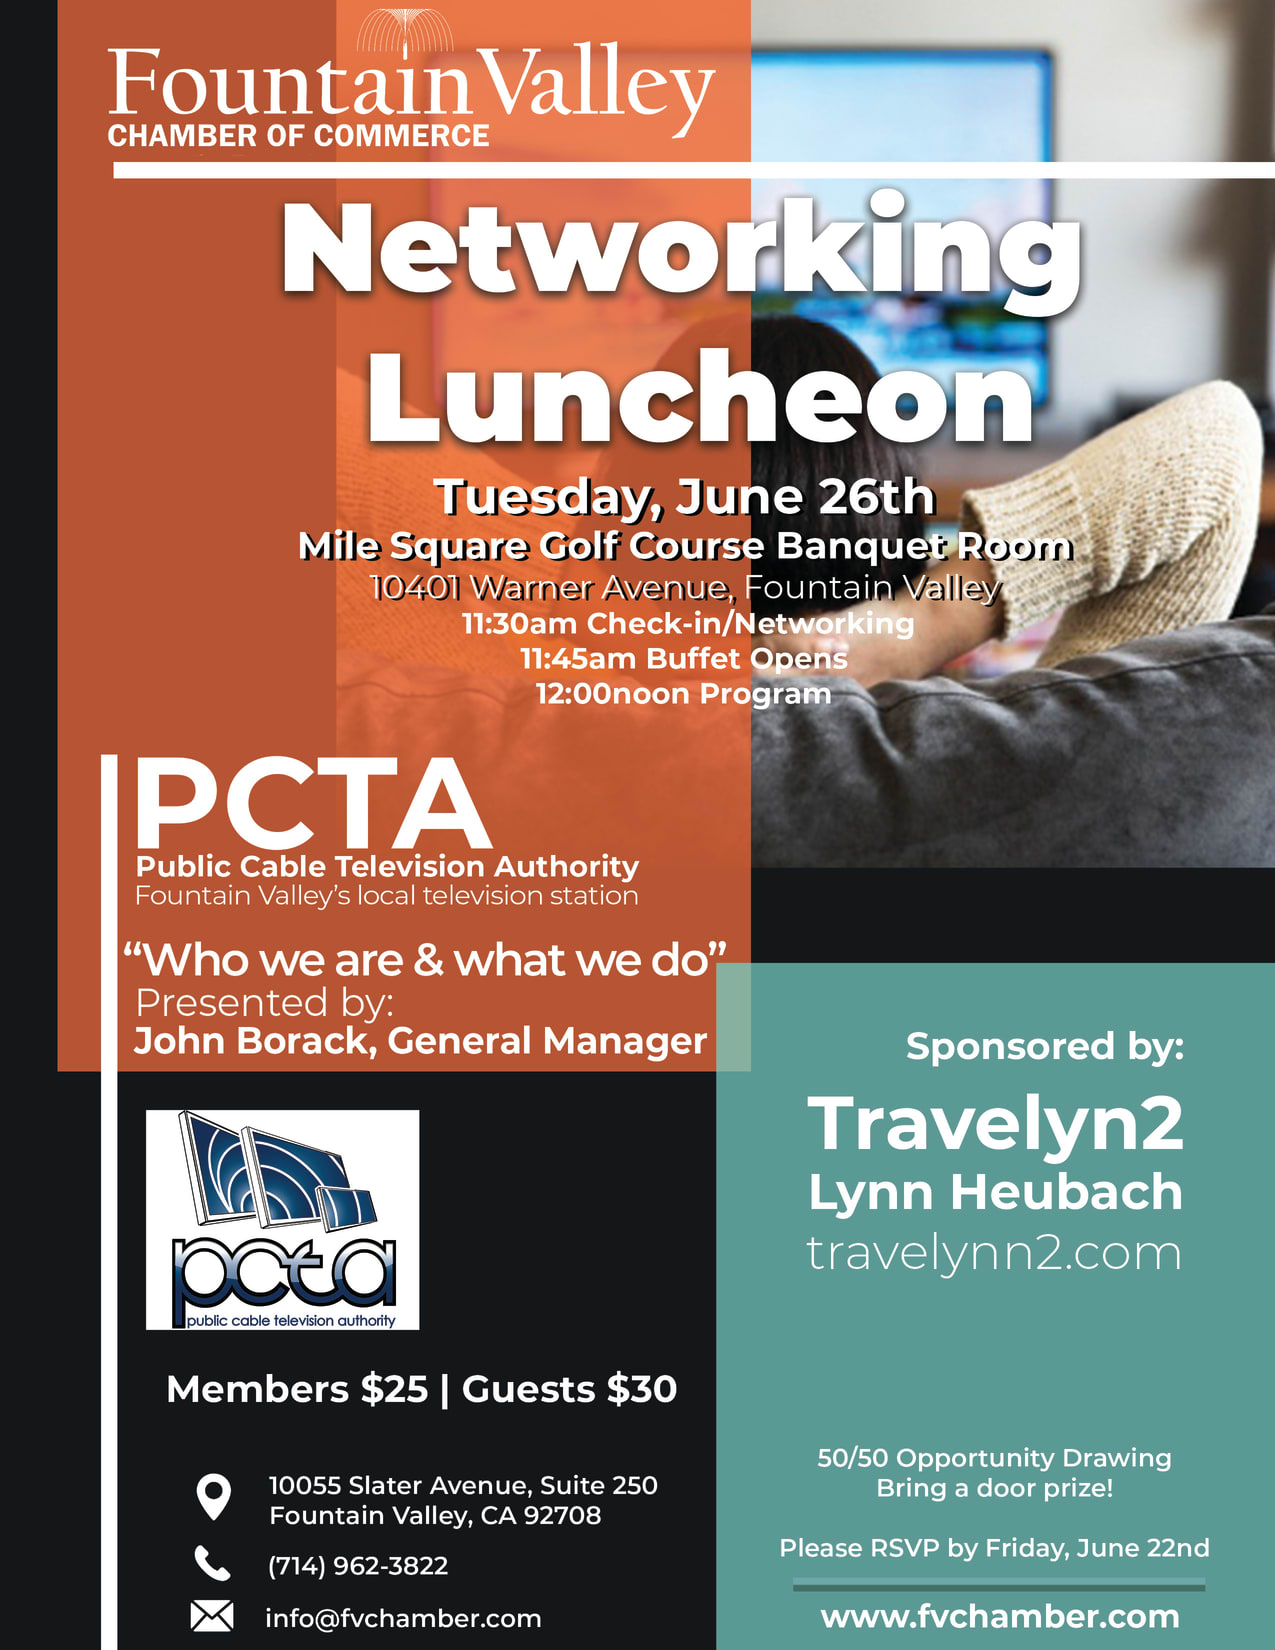 Fountain Valley Chamber Networking Luncheon PCTA